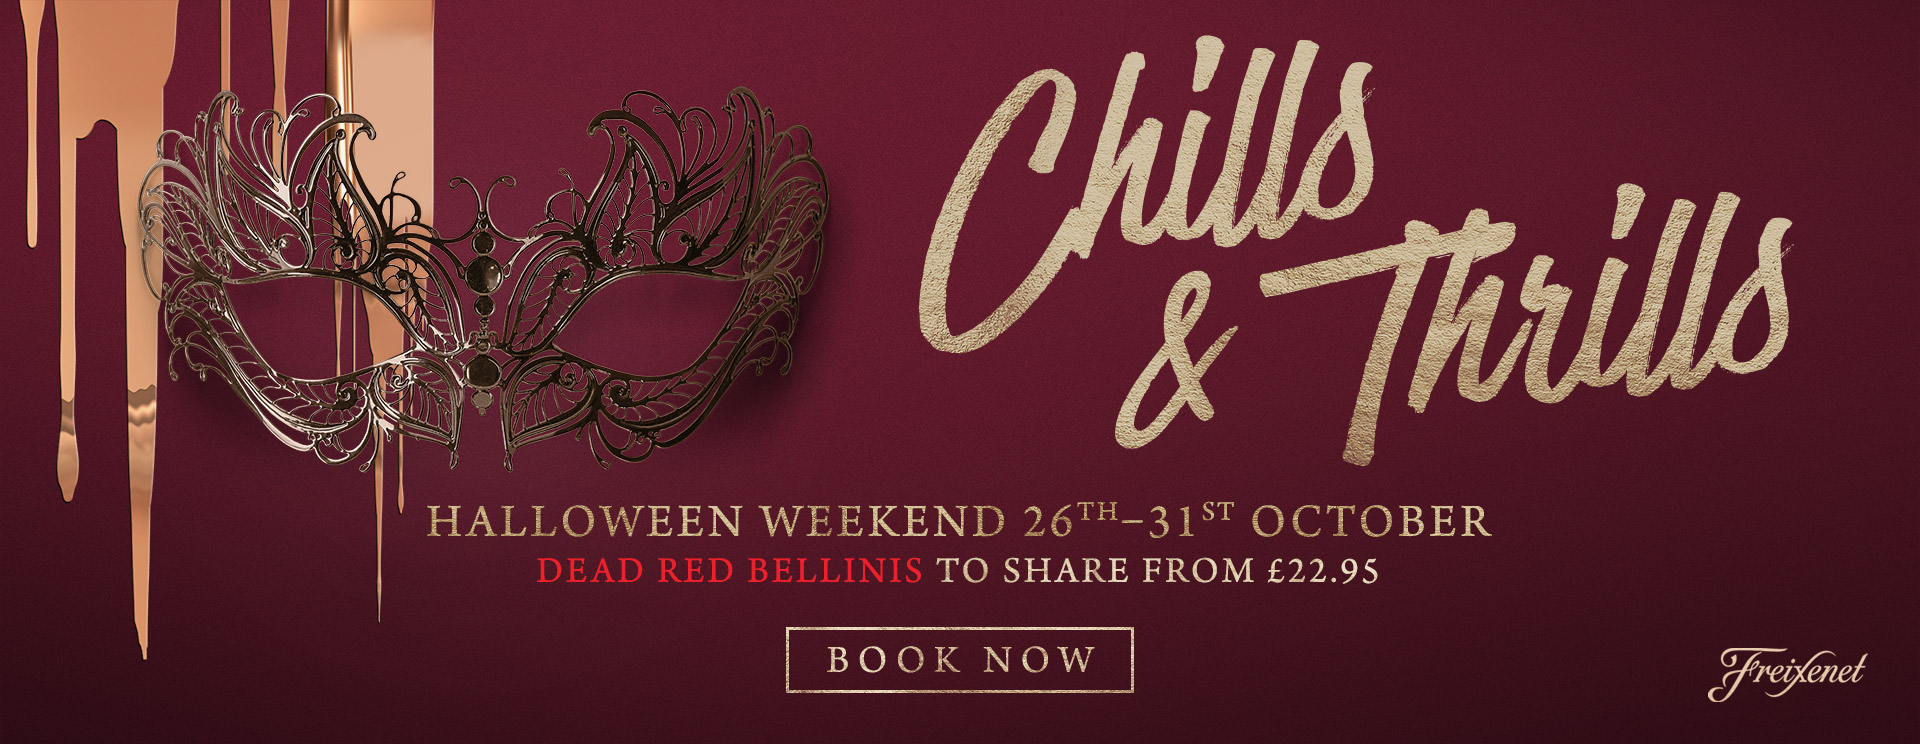 Chills & Thrills this Halloween at The Golden Heart